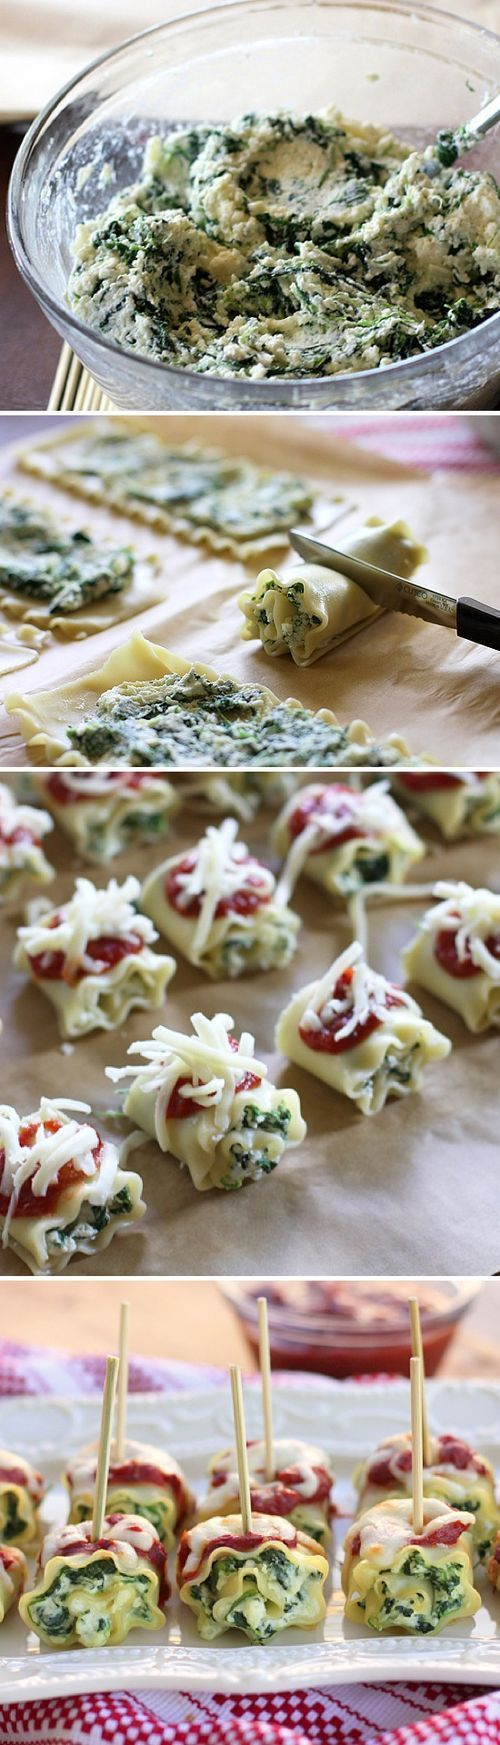 Lasagna rolls - how clever! Great idea for parties with finger foods!